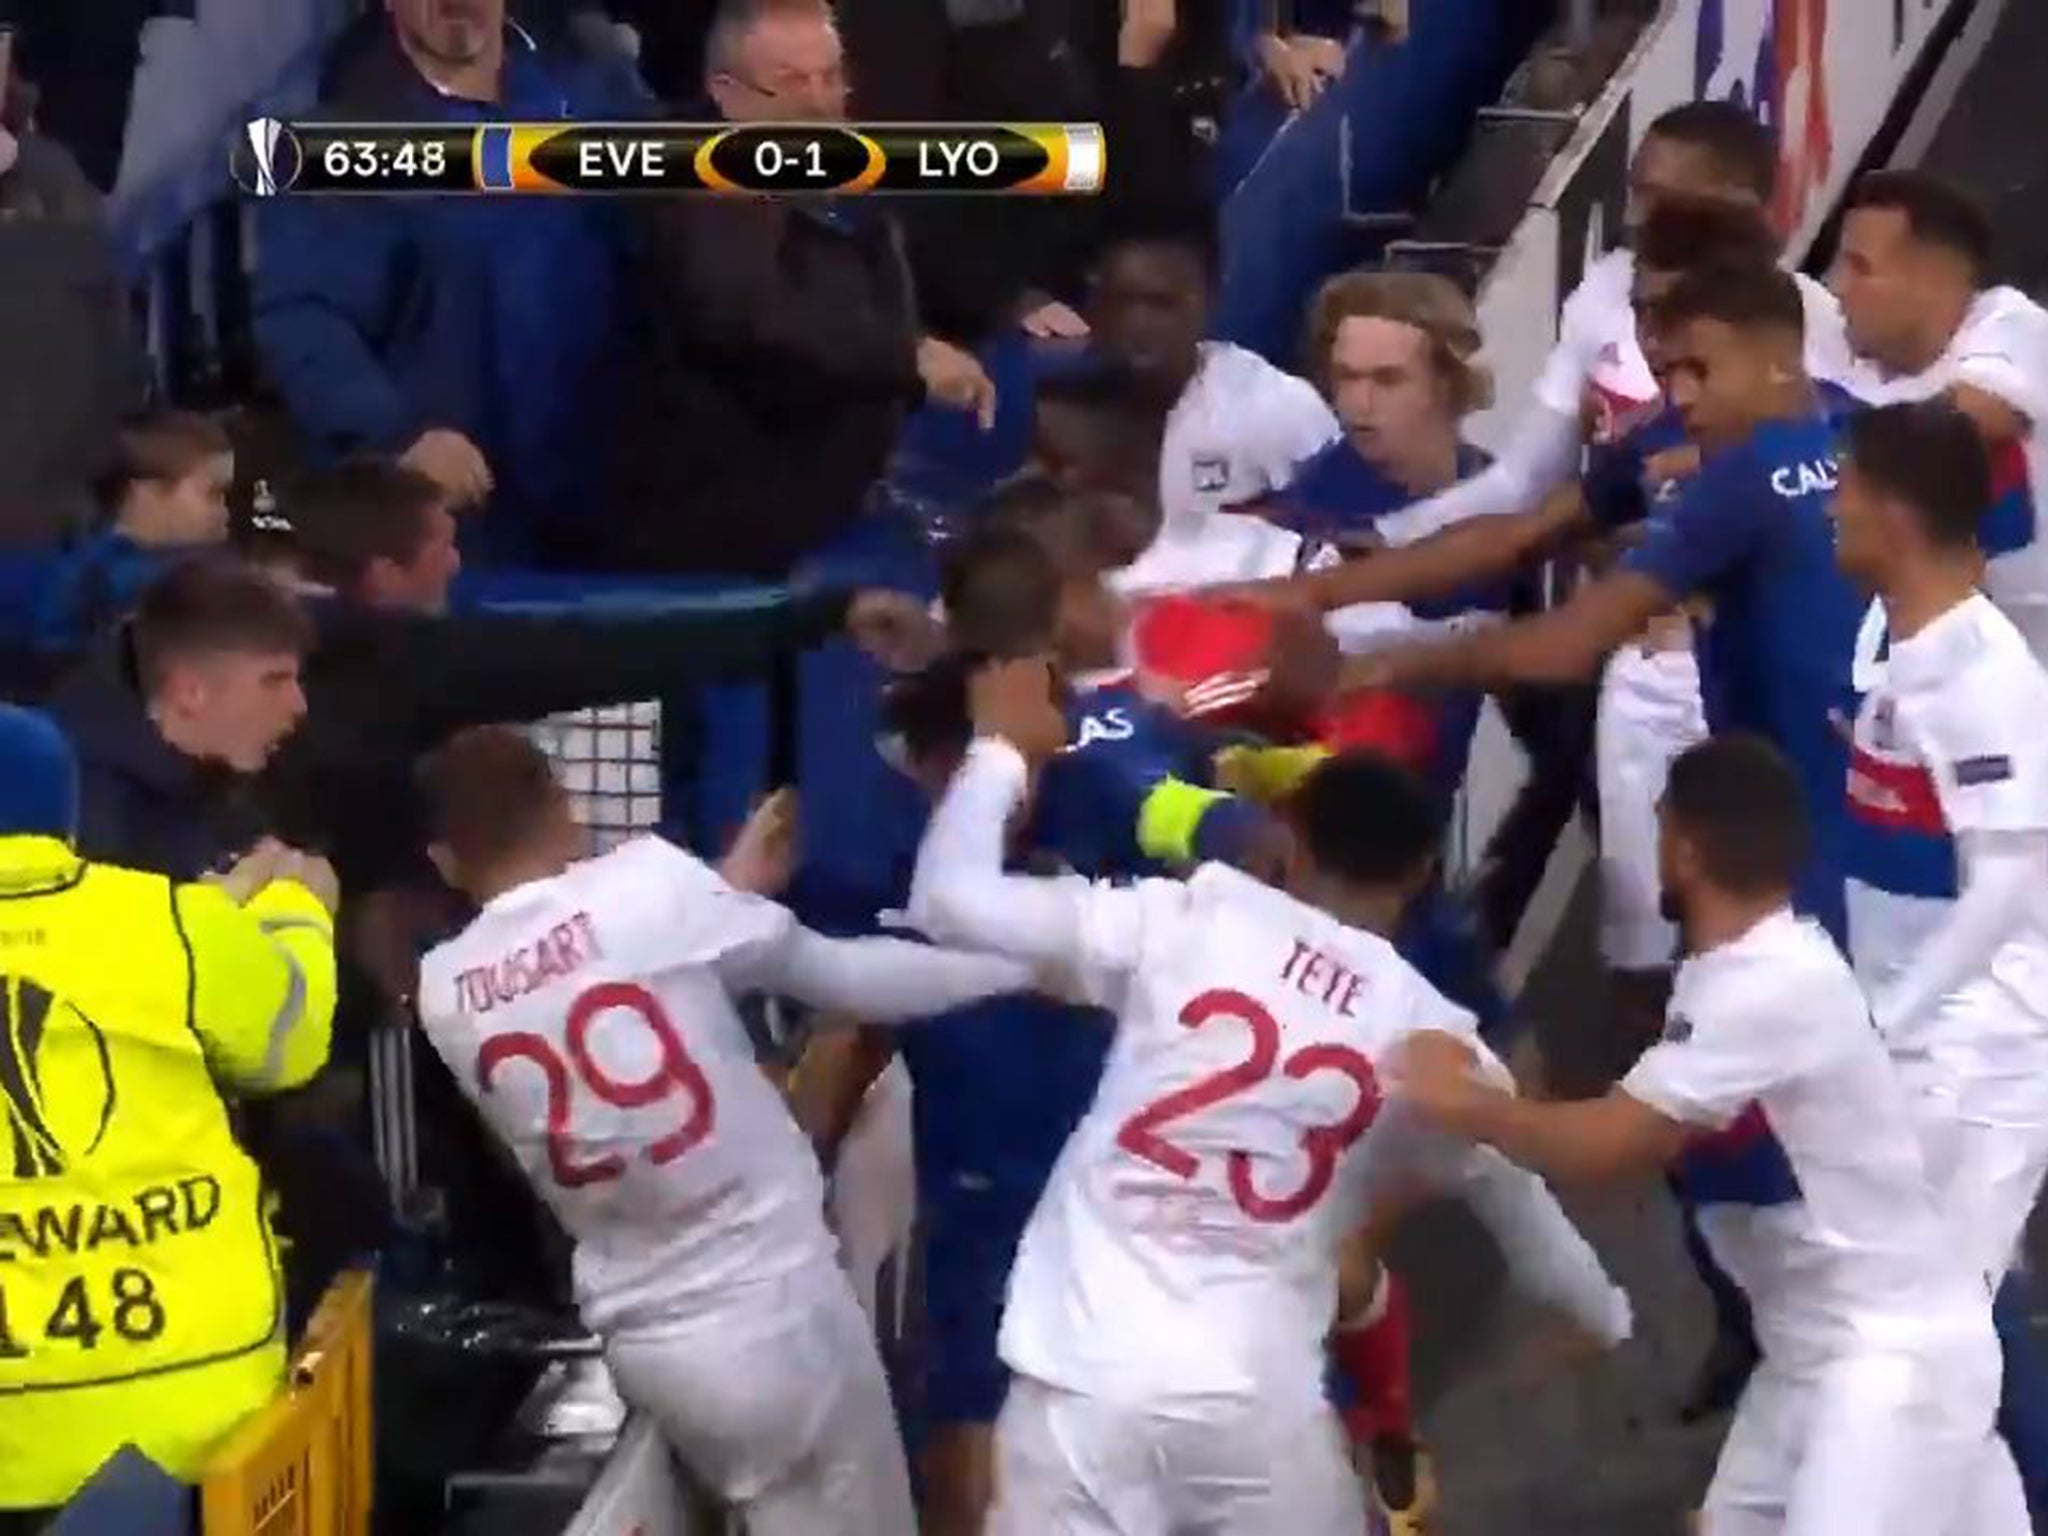 Everton fan appears to throw punch at Lyon player while holding child